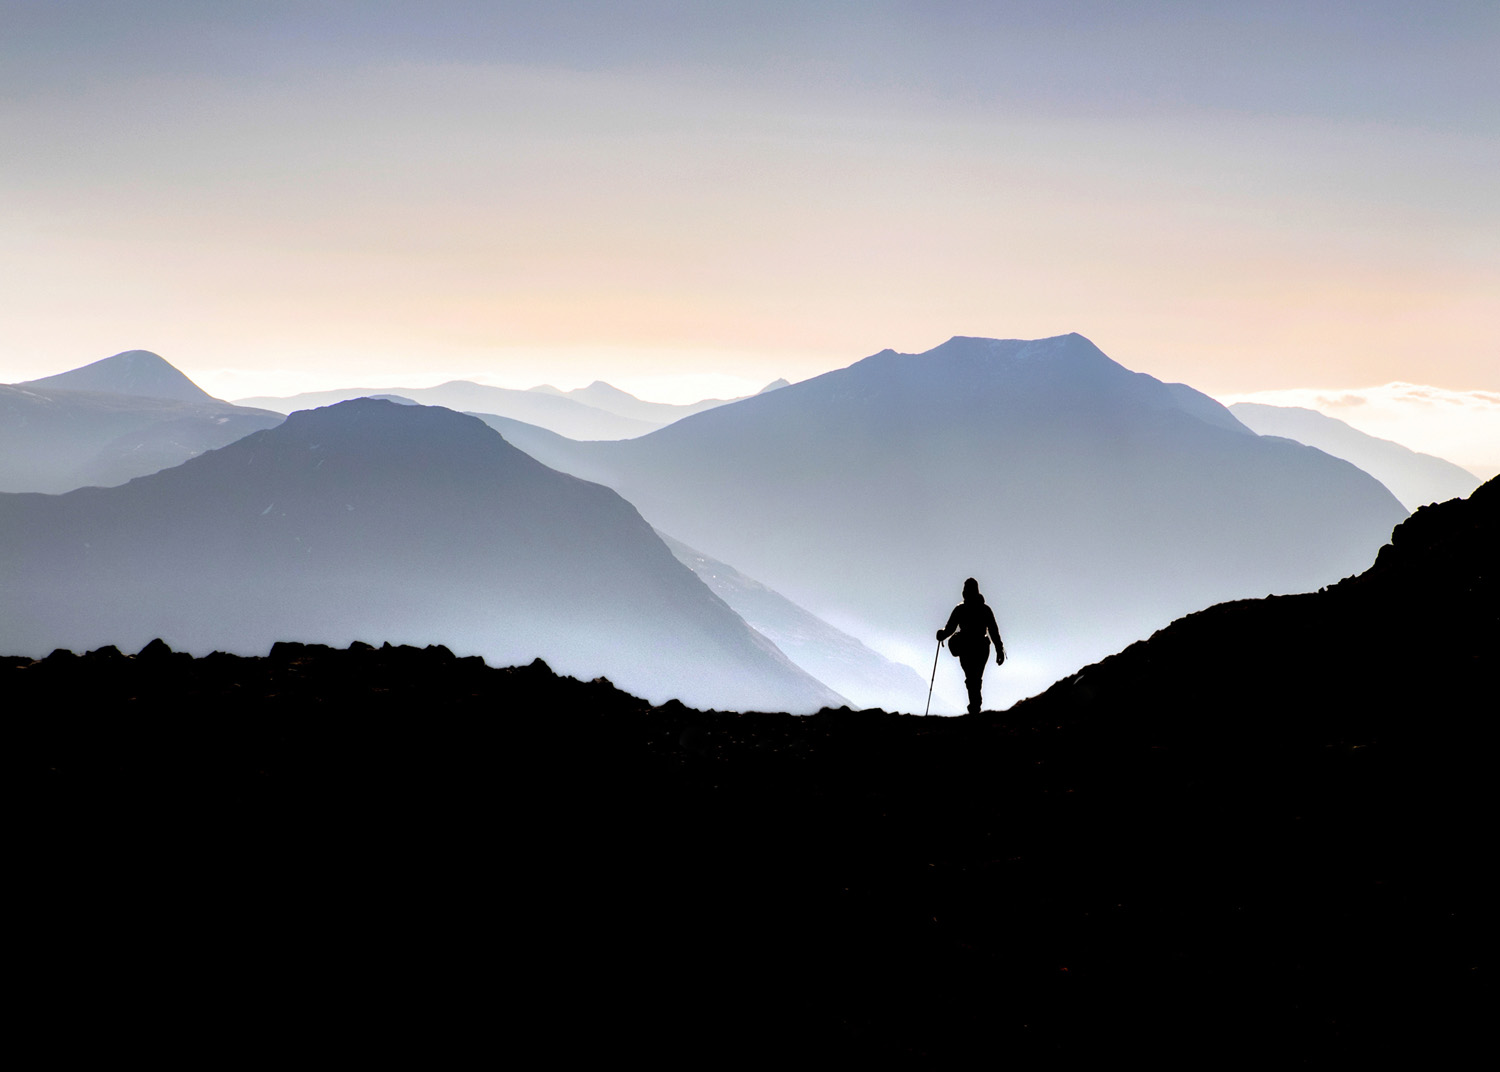 A lone hiker in the highlands